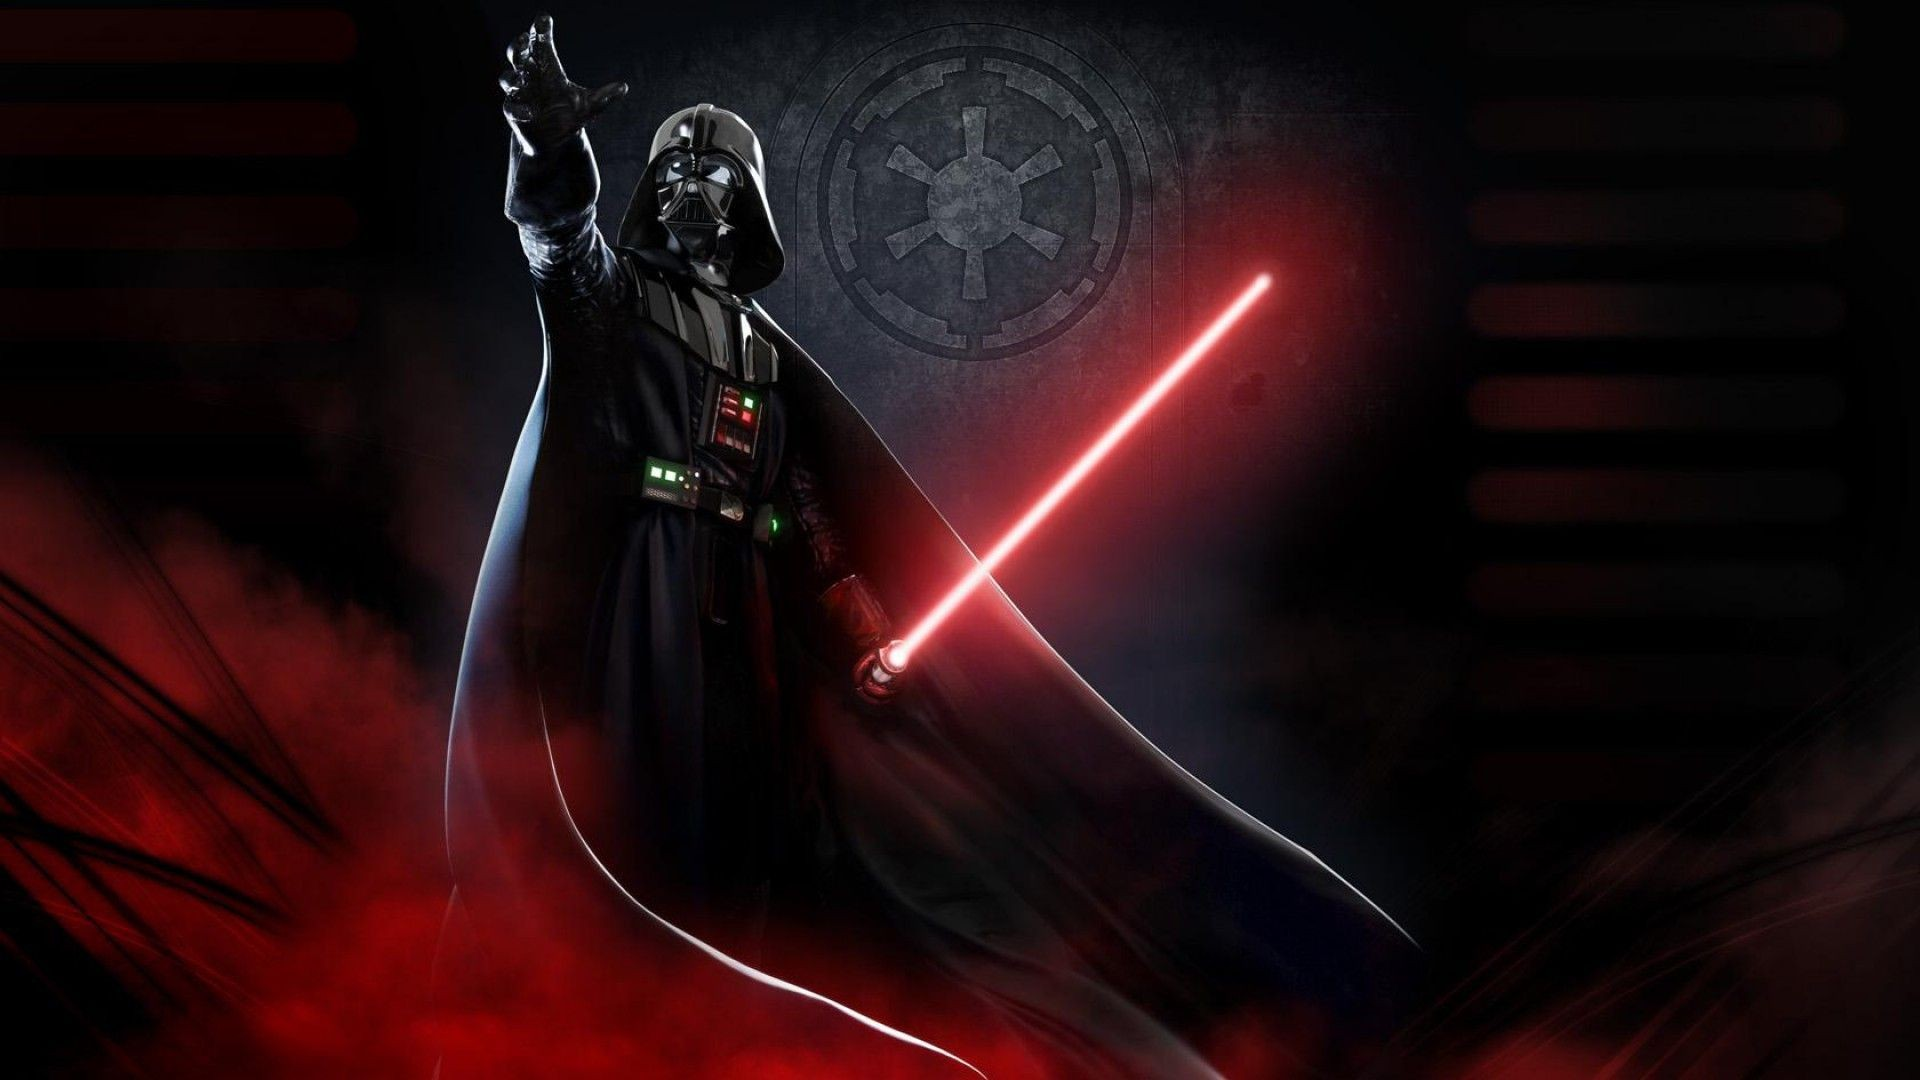 Star wars sith wallpaper download free stunning high - Star wars wallpaper ...